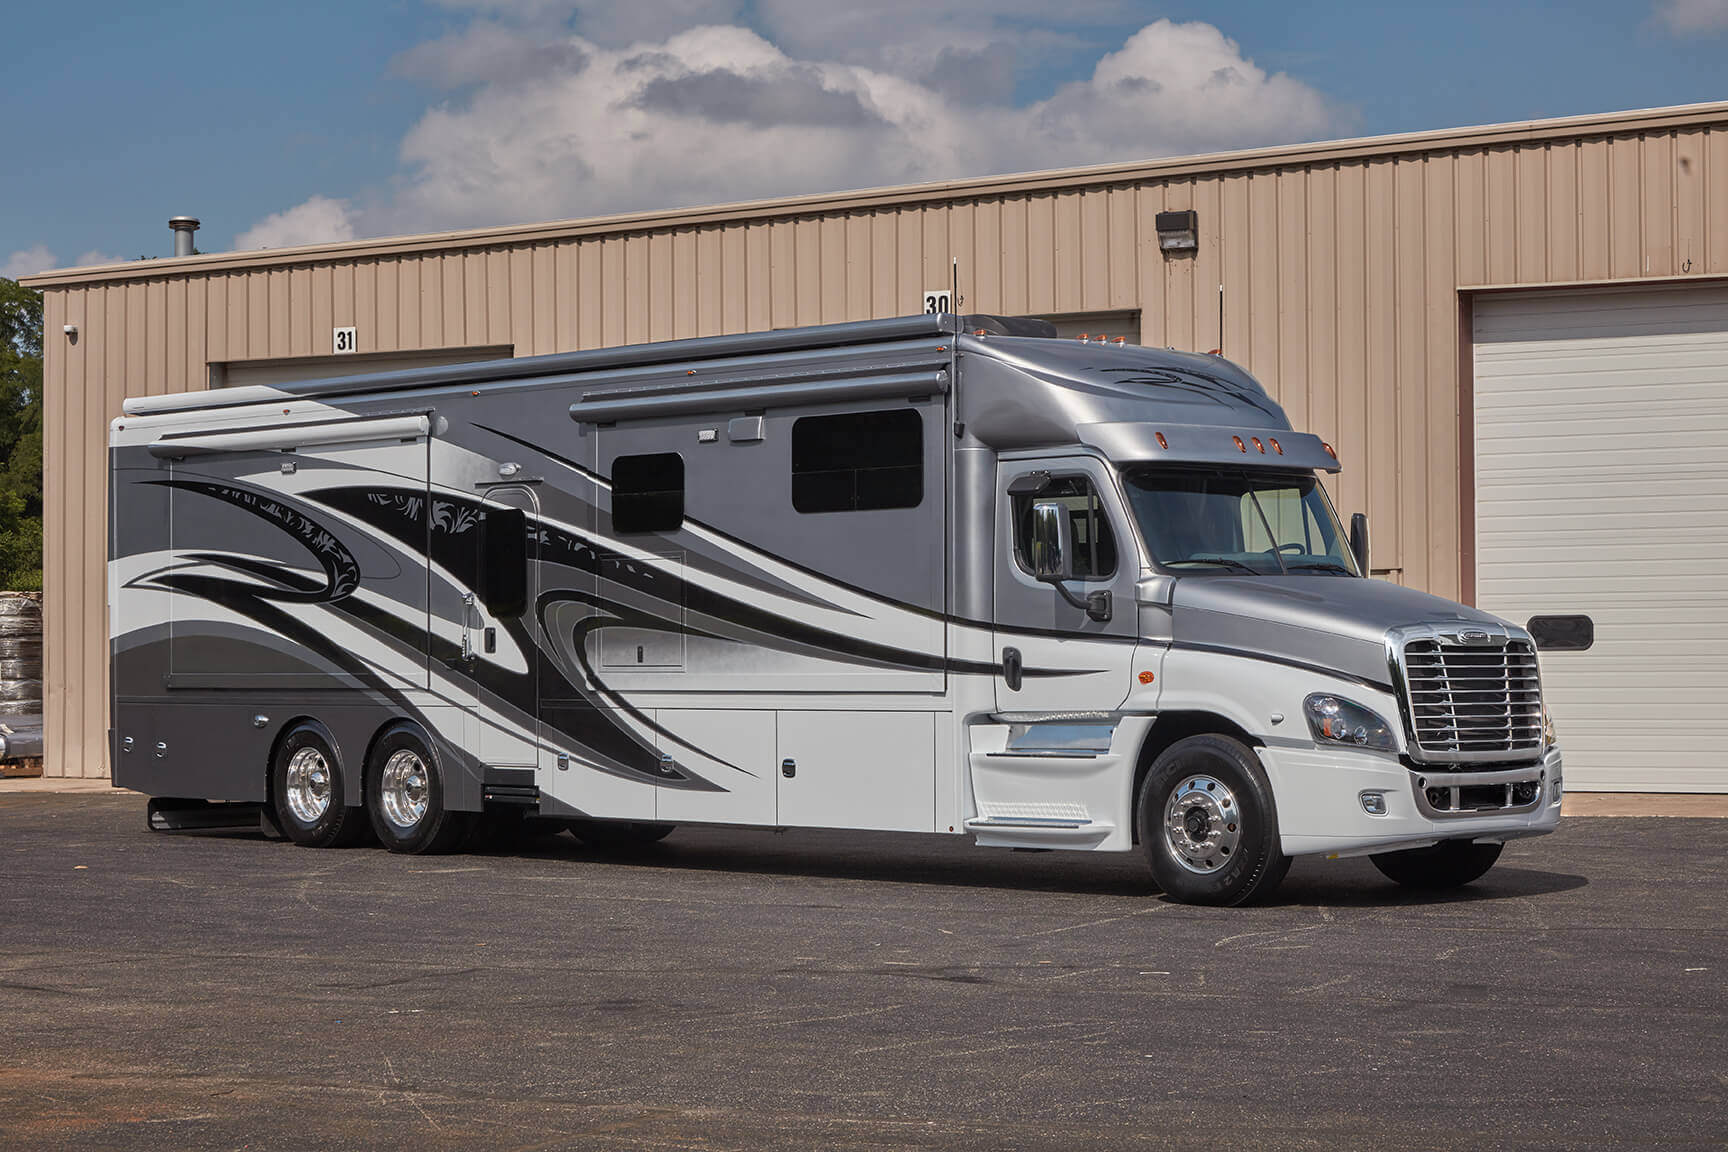 Renegade XL High-End Motorhomes – Super C Motorhomes & Racing RVs